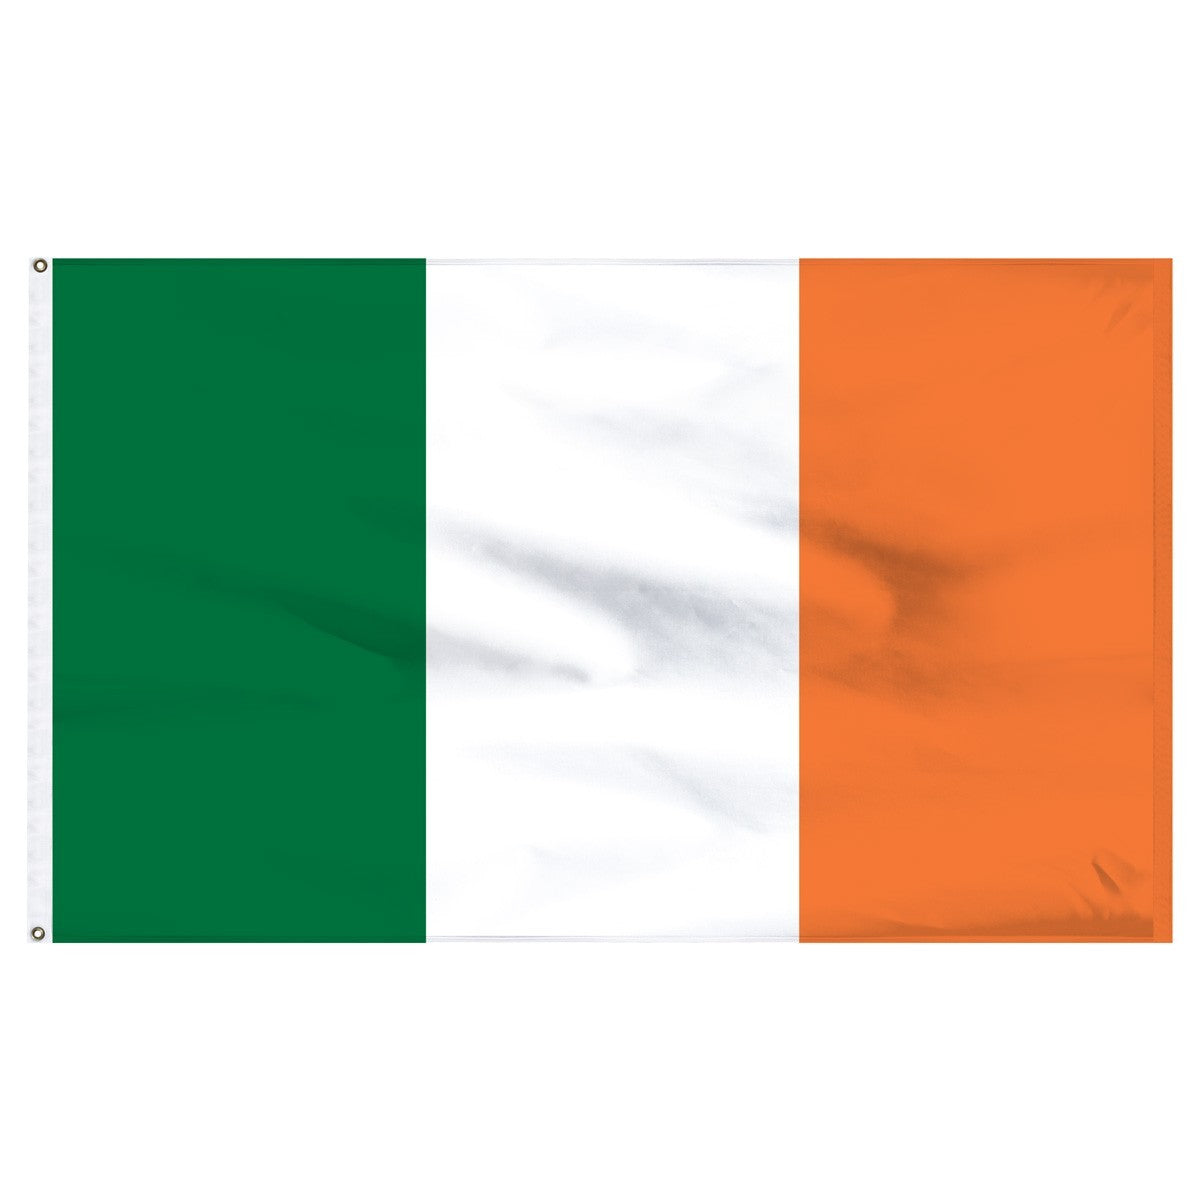 Ireland  3' x 5' Outdoor Nylon Flag